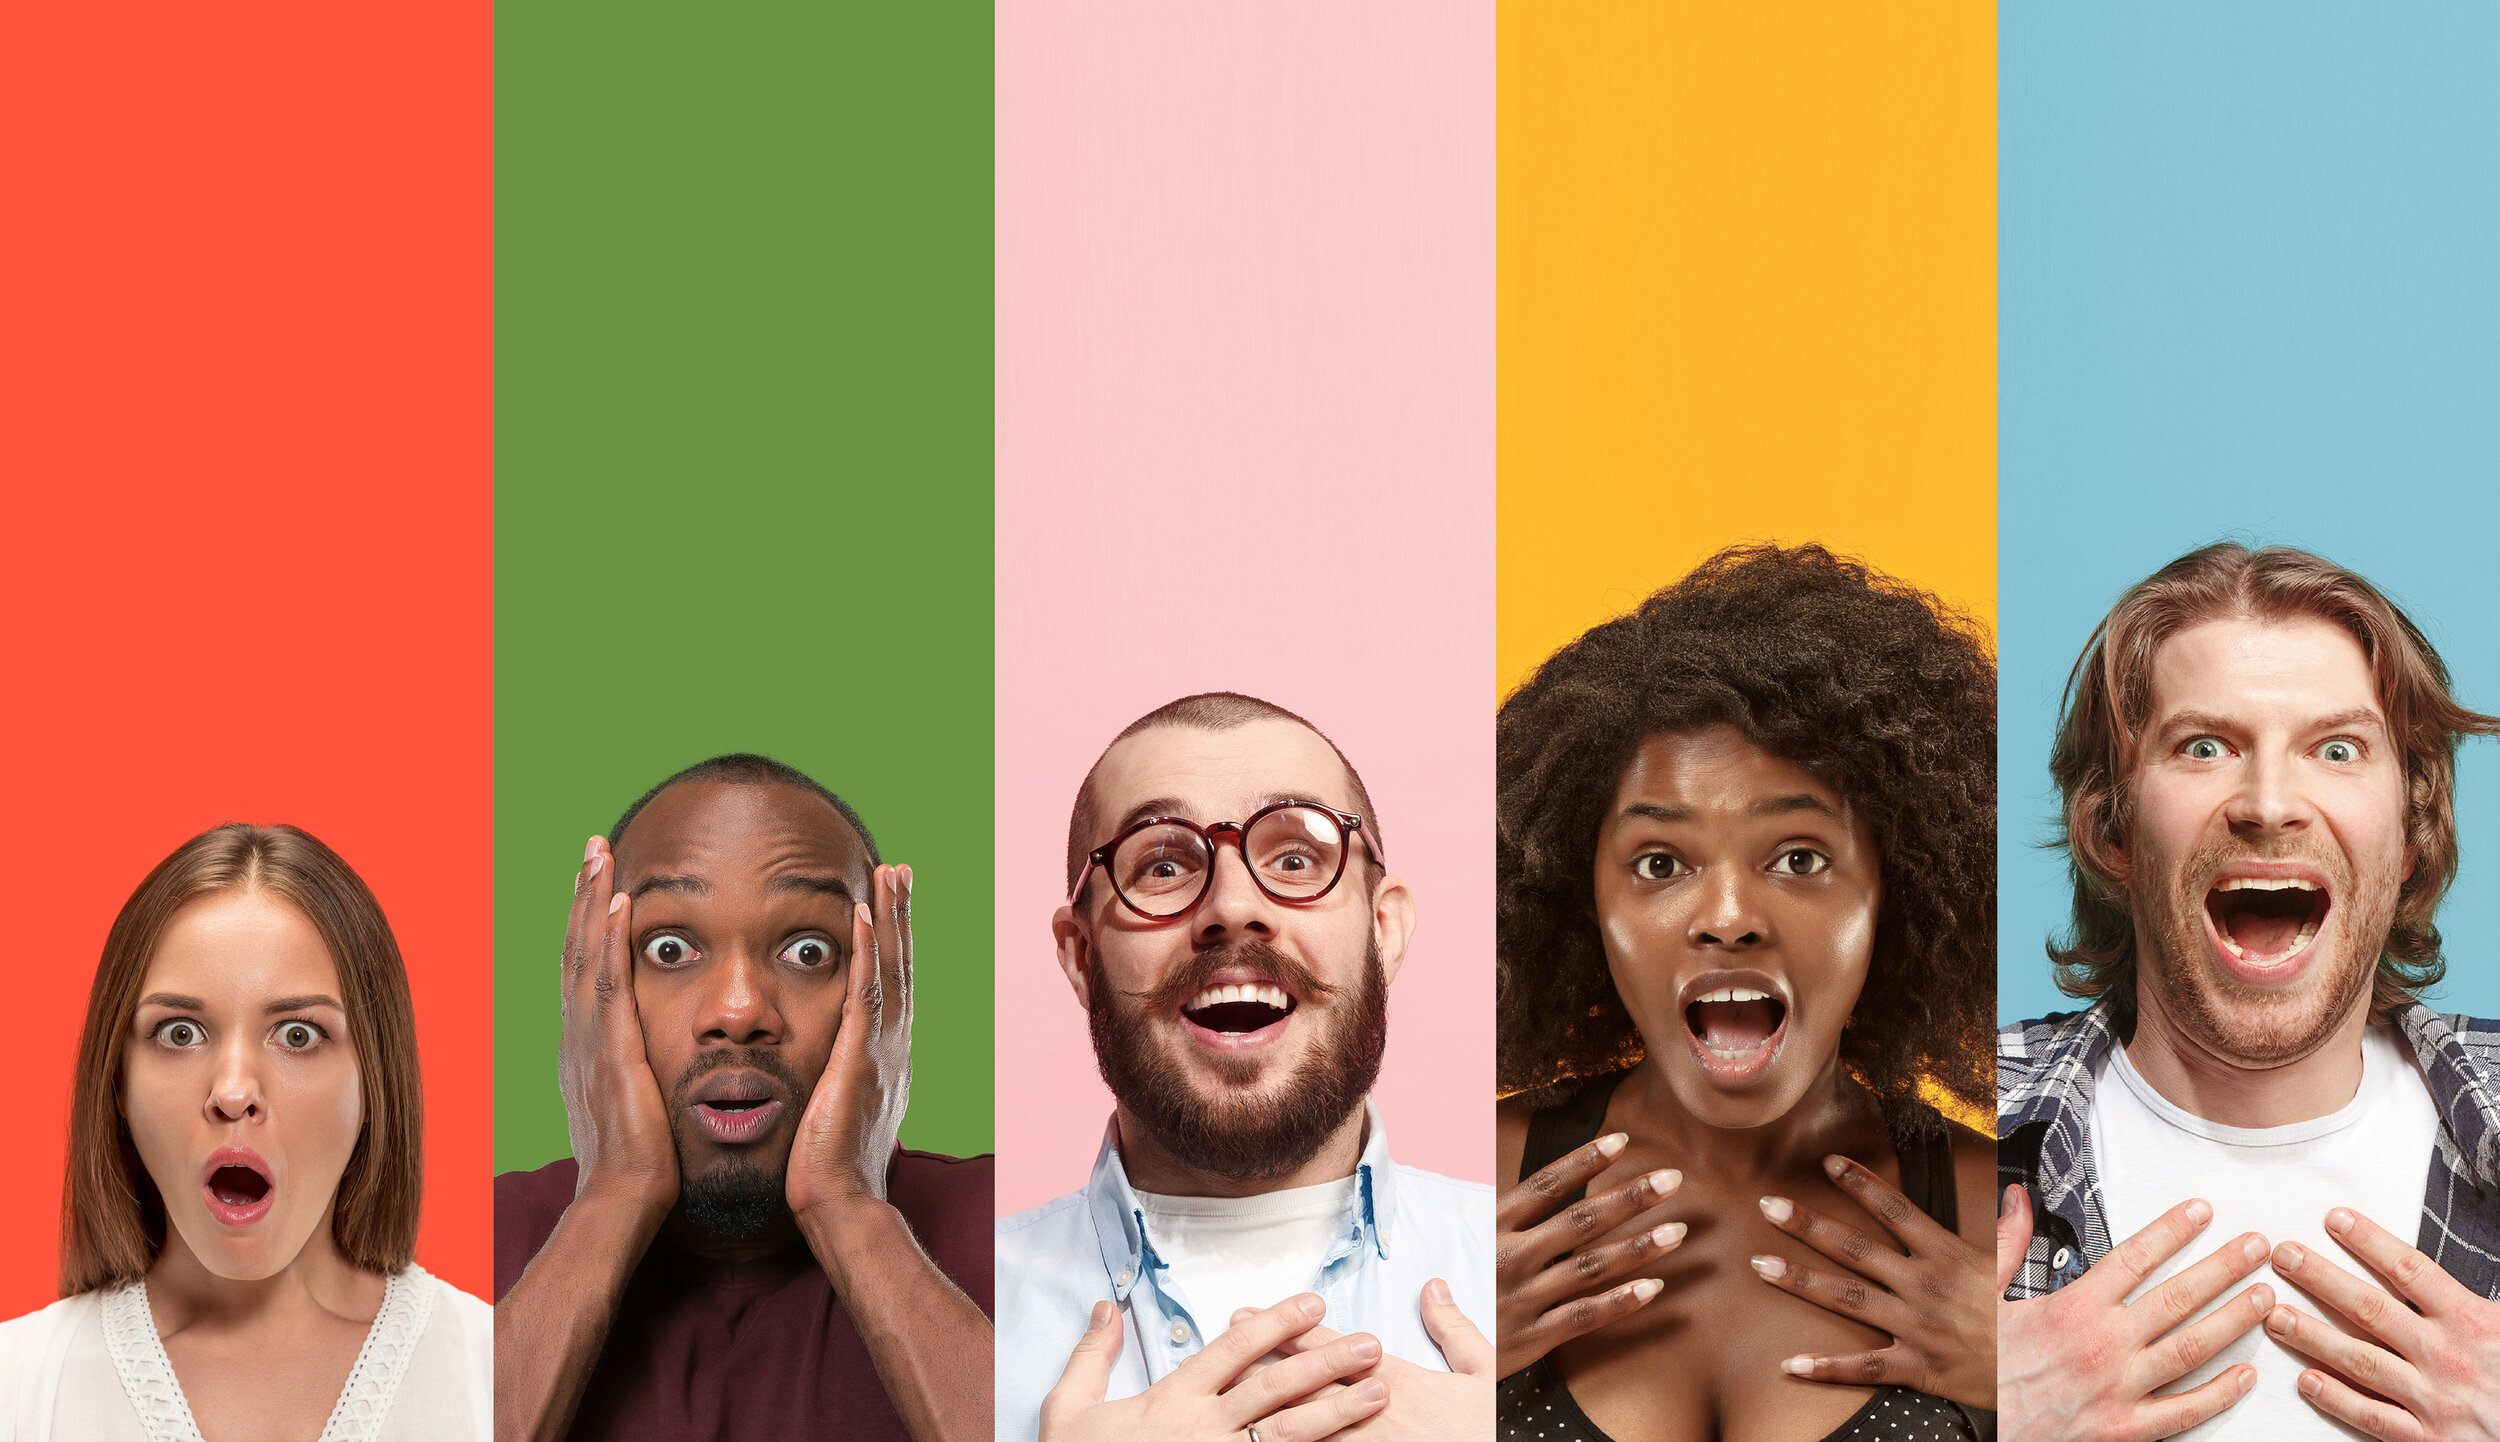 Five young people looking astonished on multicolored backgrounds.